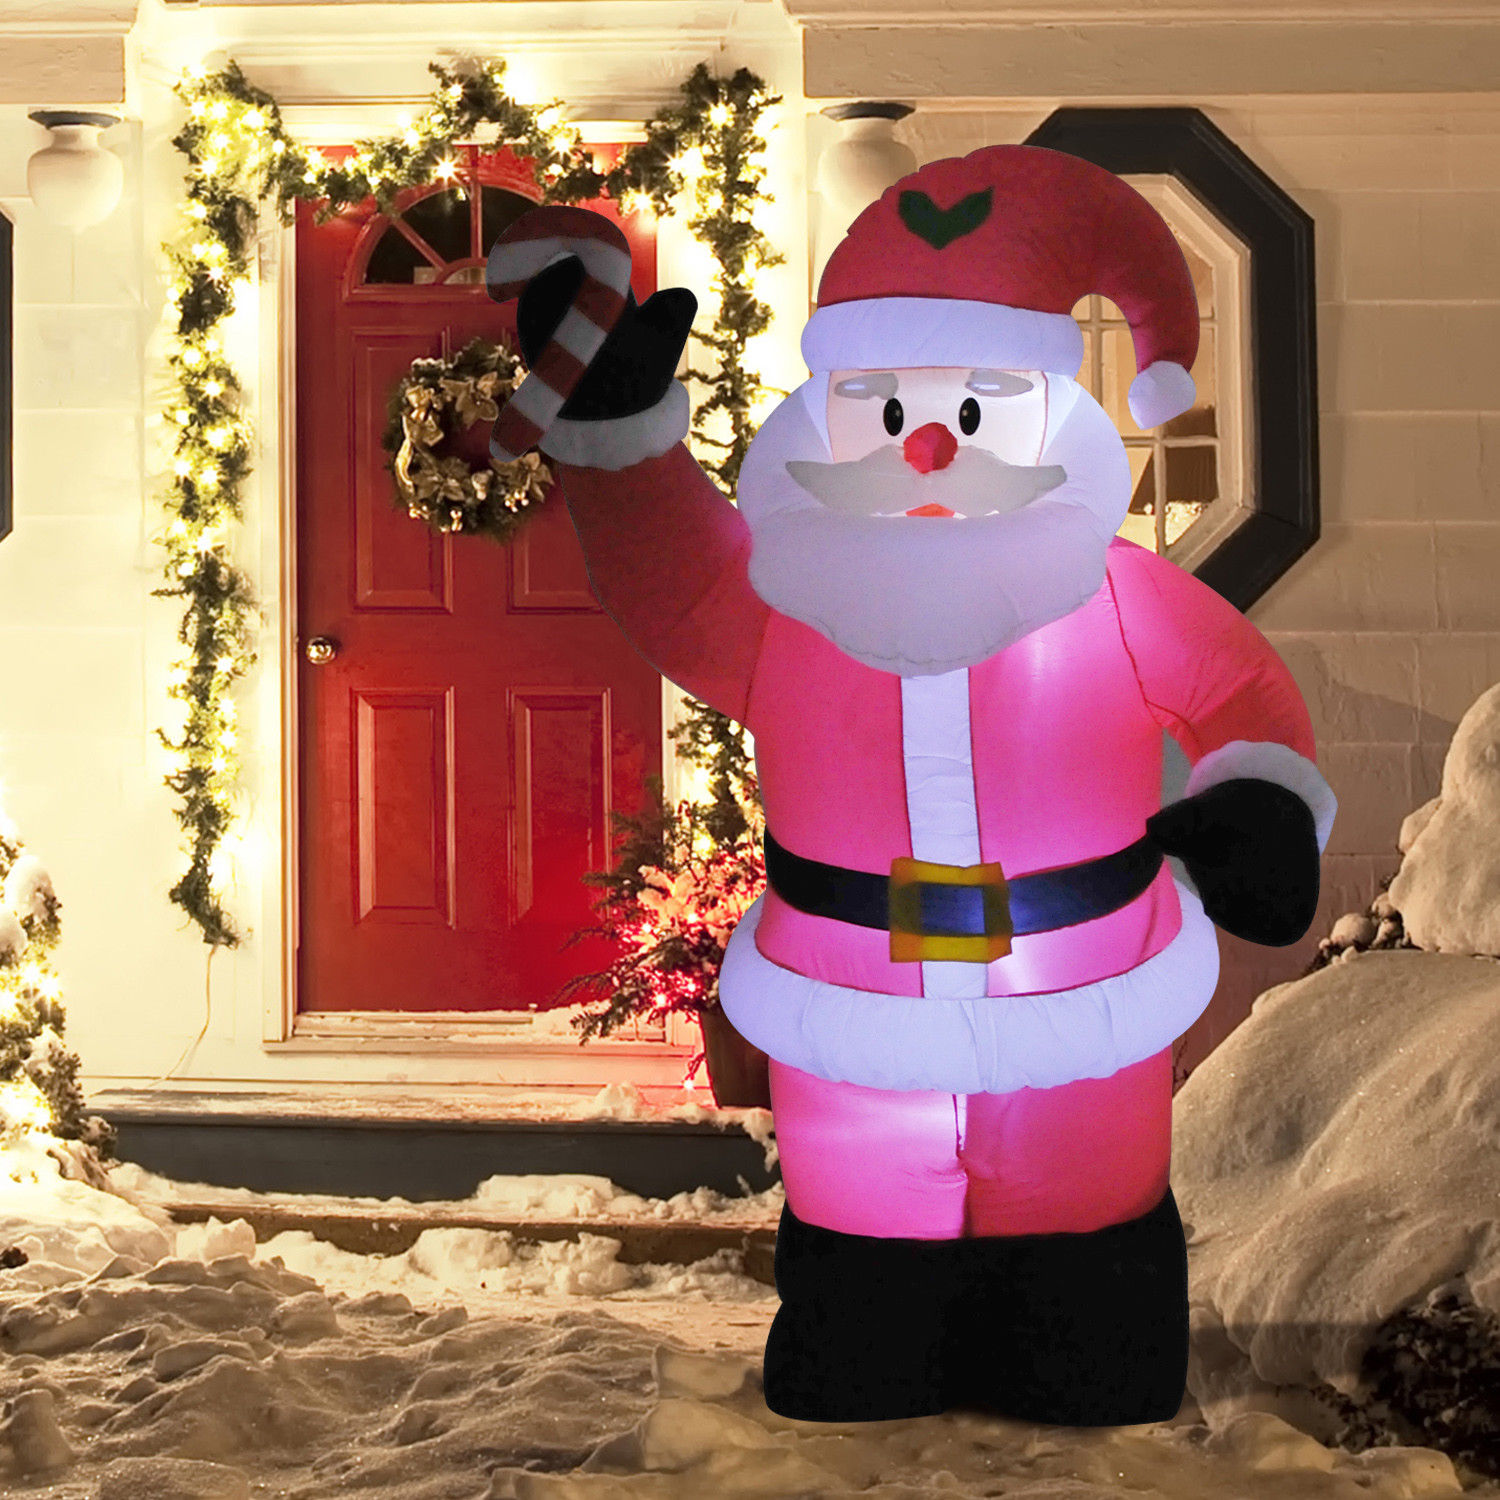 Inflatable Christmas Decorations.Details About 8ft Inflatable Christmas Santa Claus Holiday Airblown Yard Outdoor Decorations